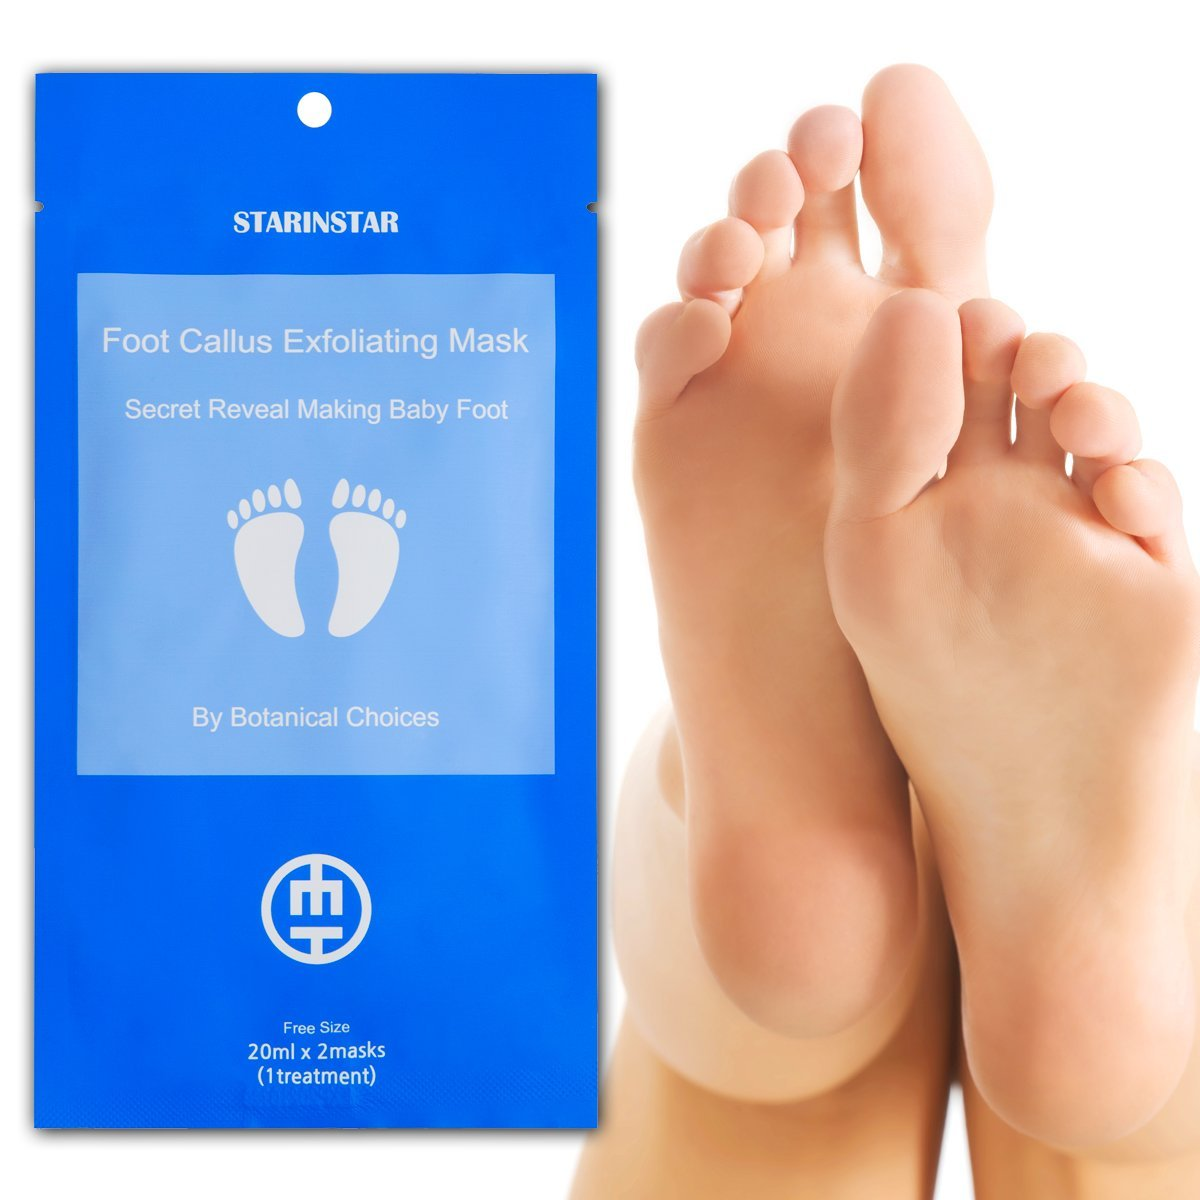 [STARINSTAR] Foot Callus Maschera esfoliante 1 paio, Secret Reveal Making Baby Foot di Botanical Choices- Papaya, Limone, Mela, Estratti di arancia, Inizio Peeling in 4-7 giorni dopo l'uso, Rimosso altri 3-5 giorni a seconda del loro spessore Swift Co. Ltd